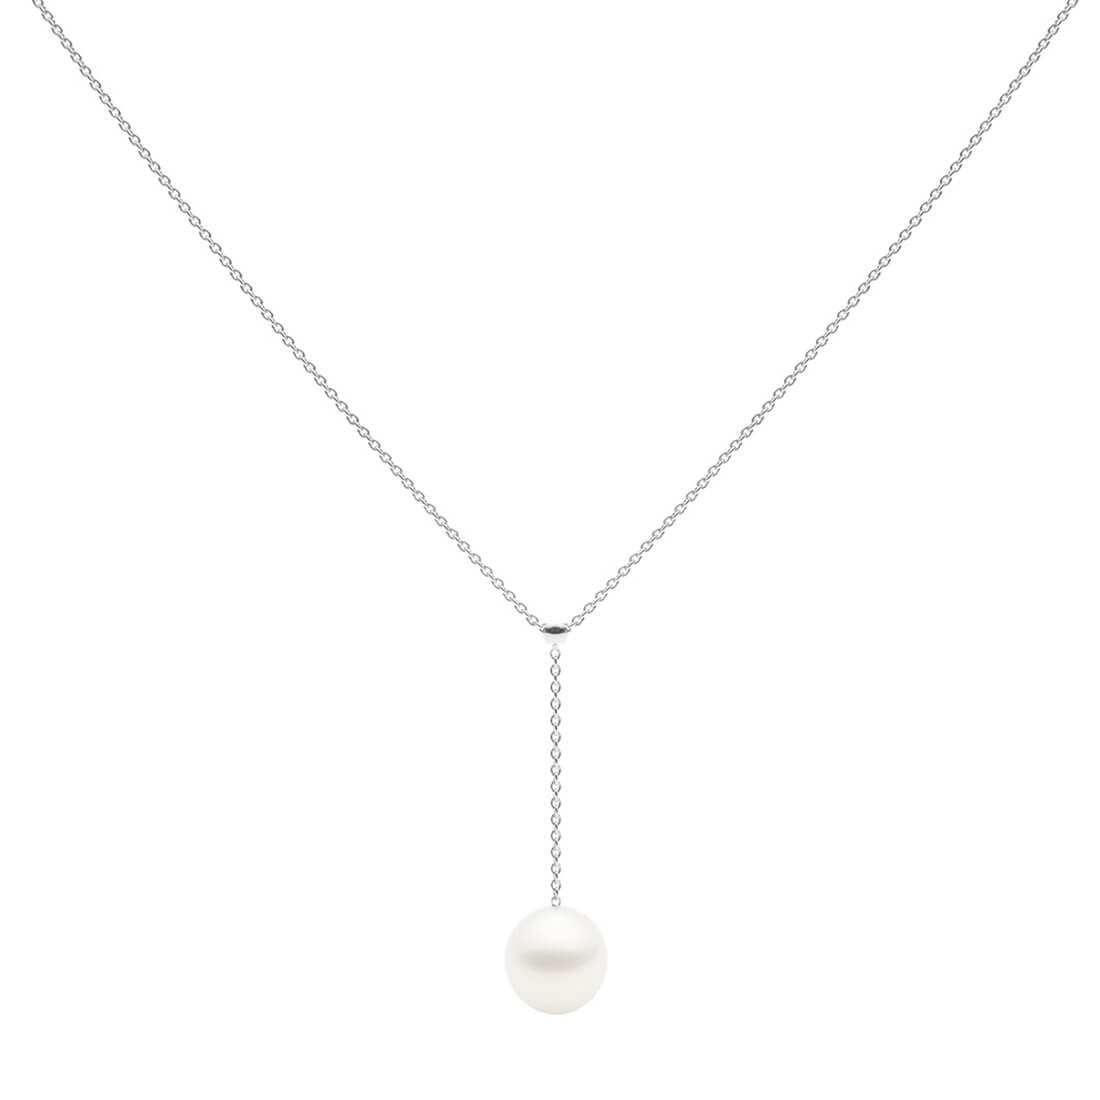 Kailis - Negligee Pearl Necklace, White Gold